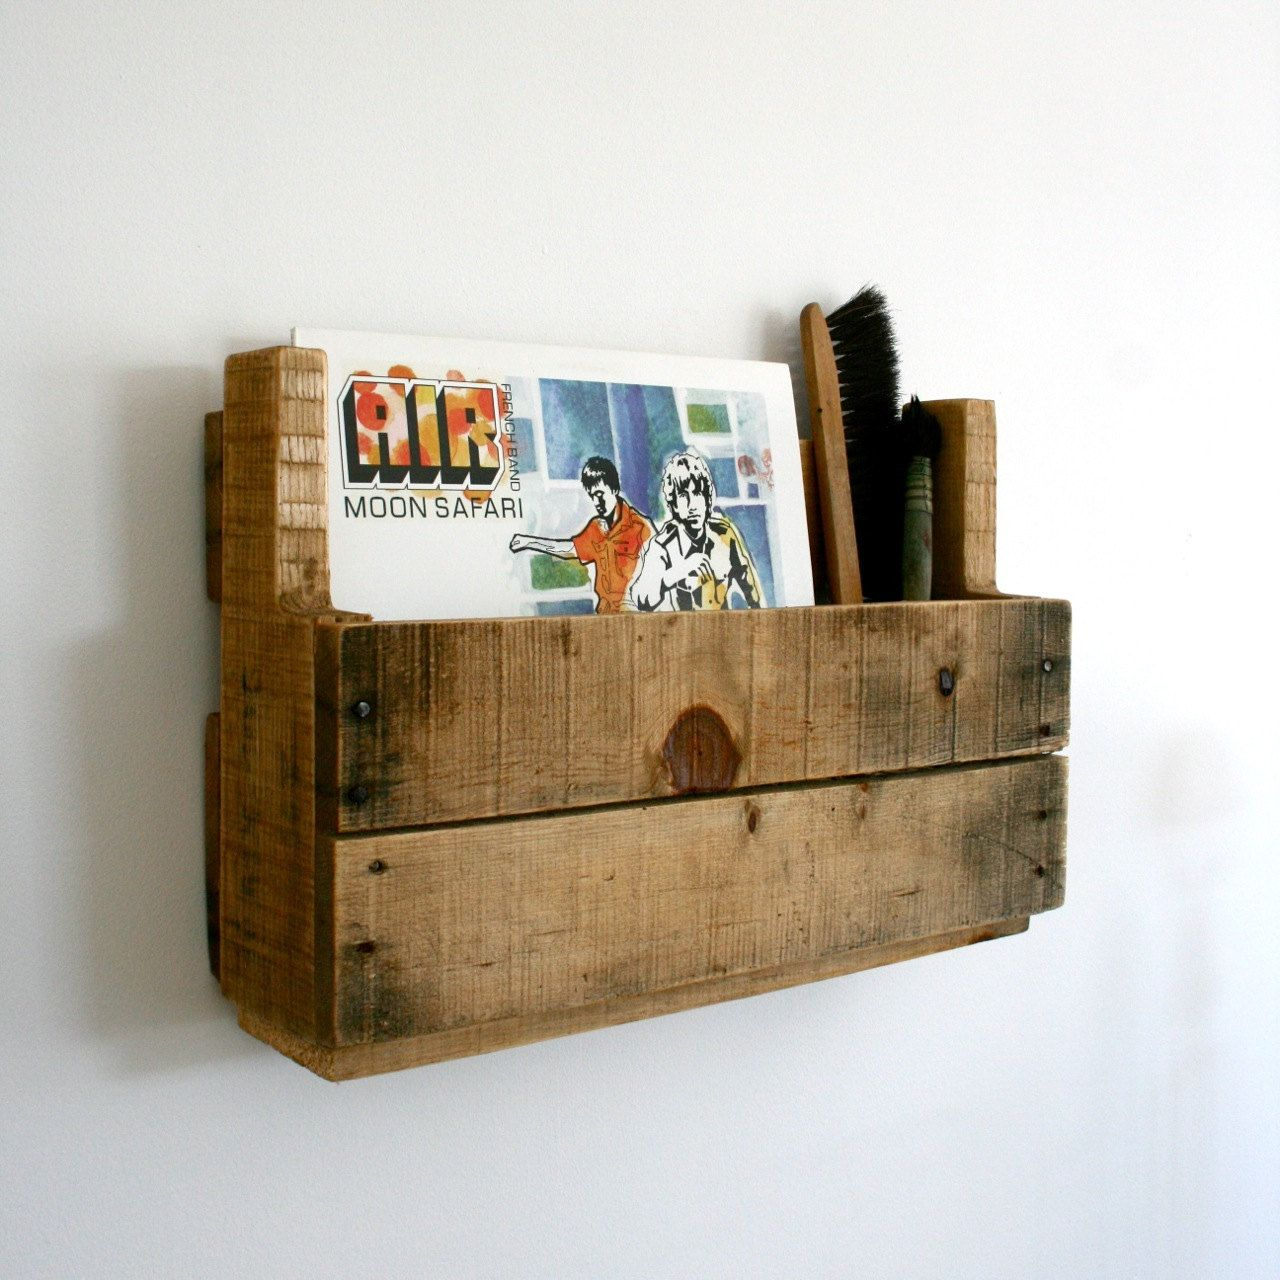 Exceptional $36 Wall Mount Recycled Wood Pallet Shelf For Vinyl Record Or Curio Storage